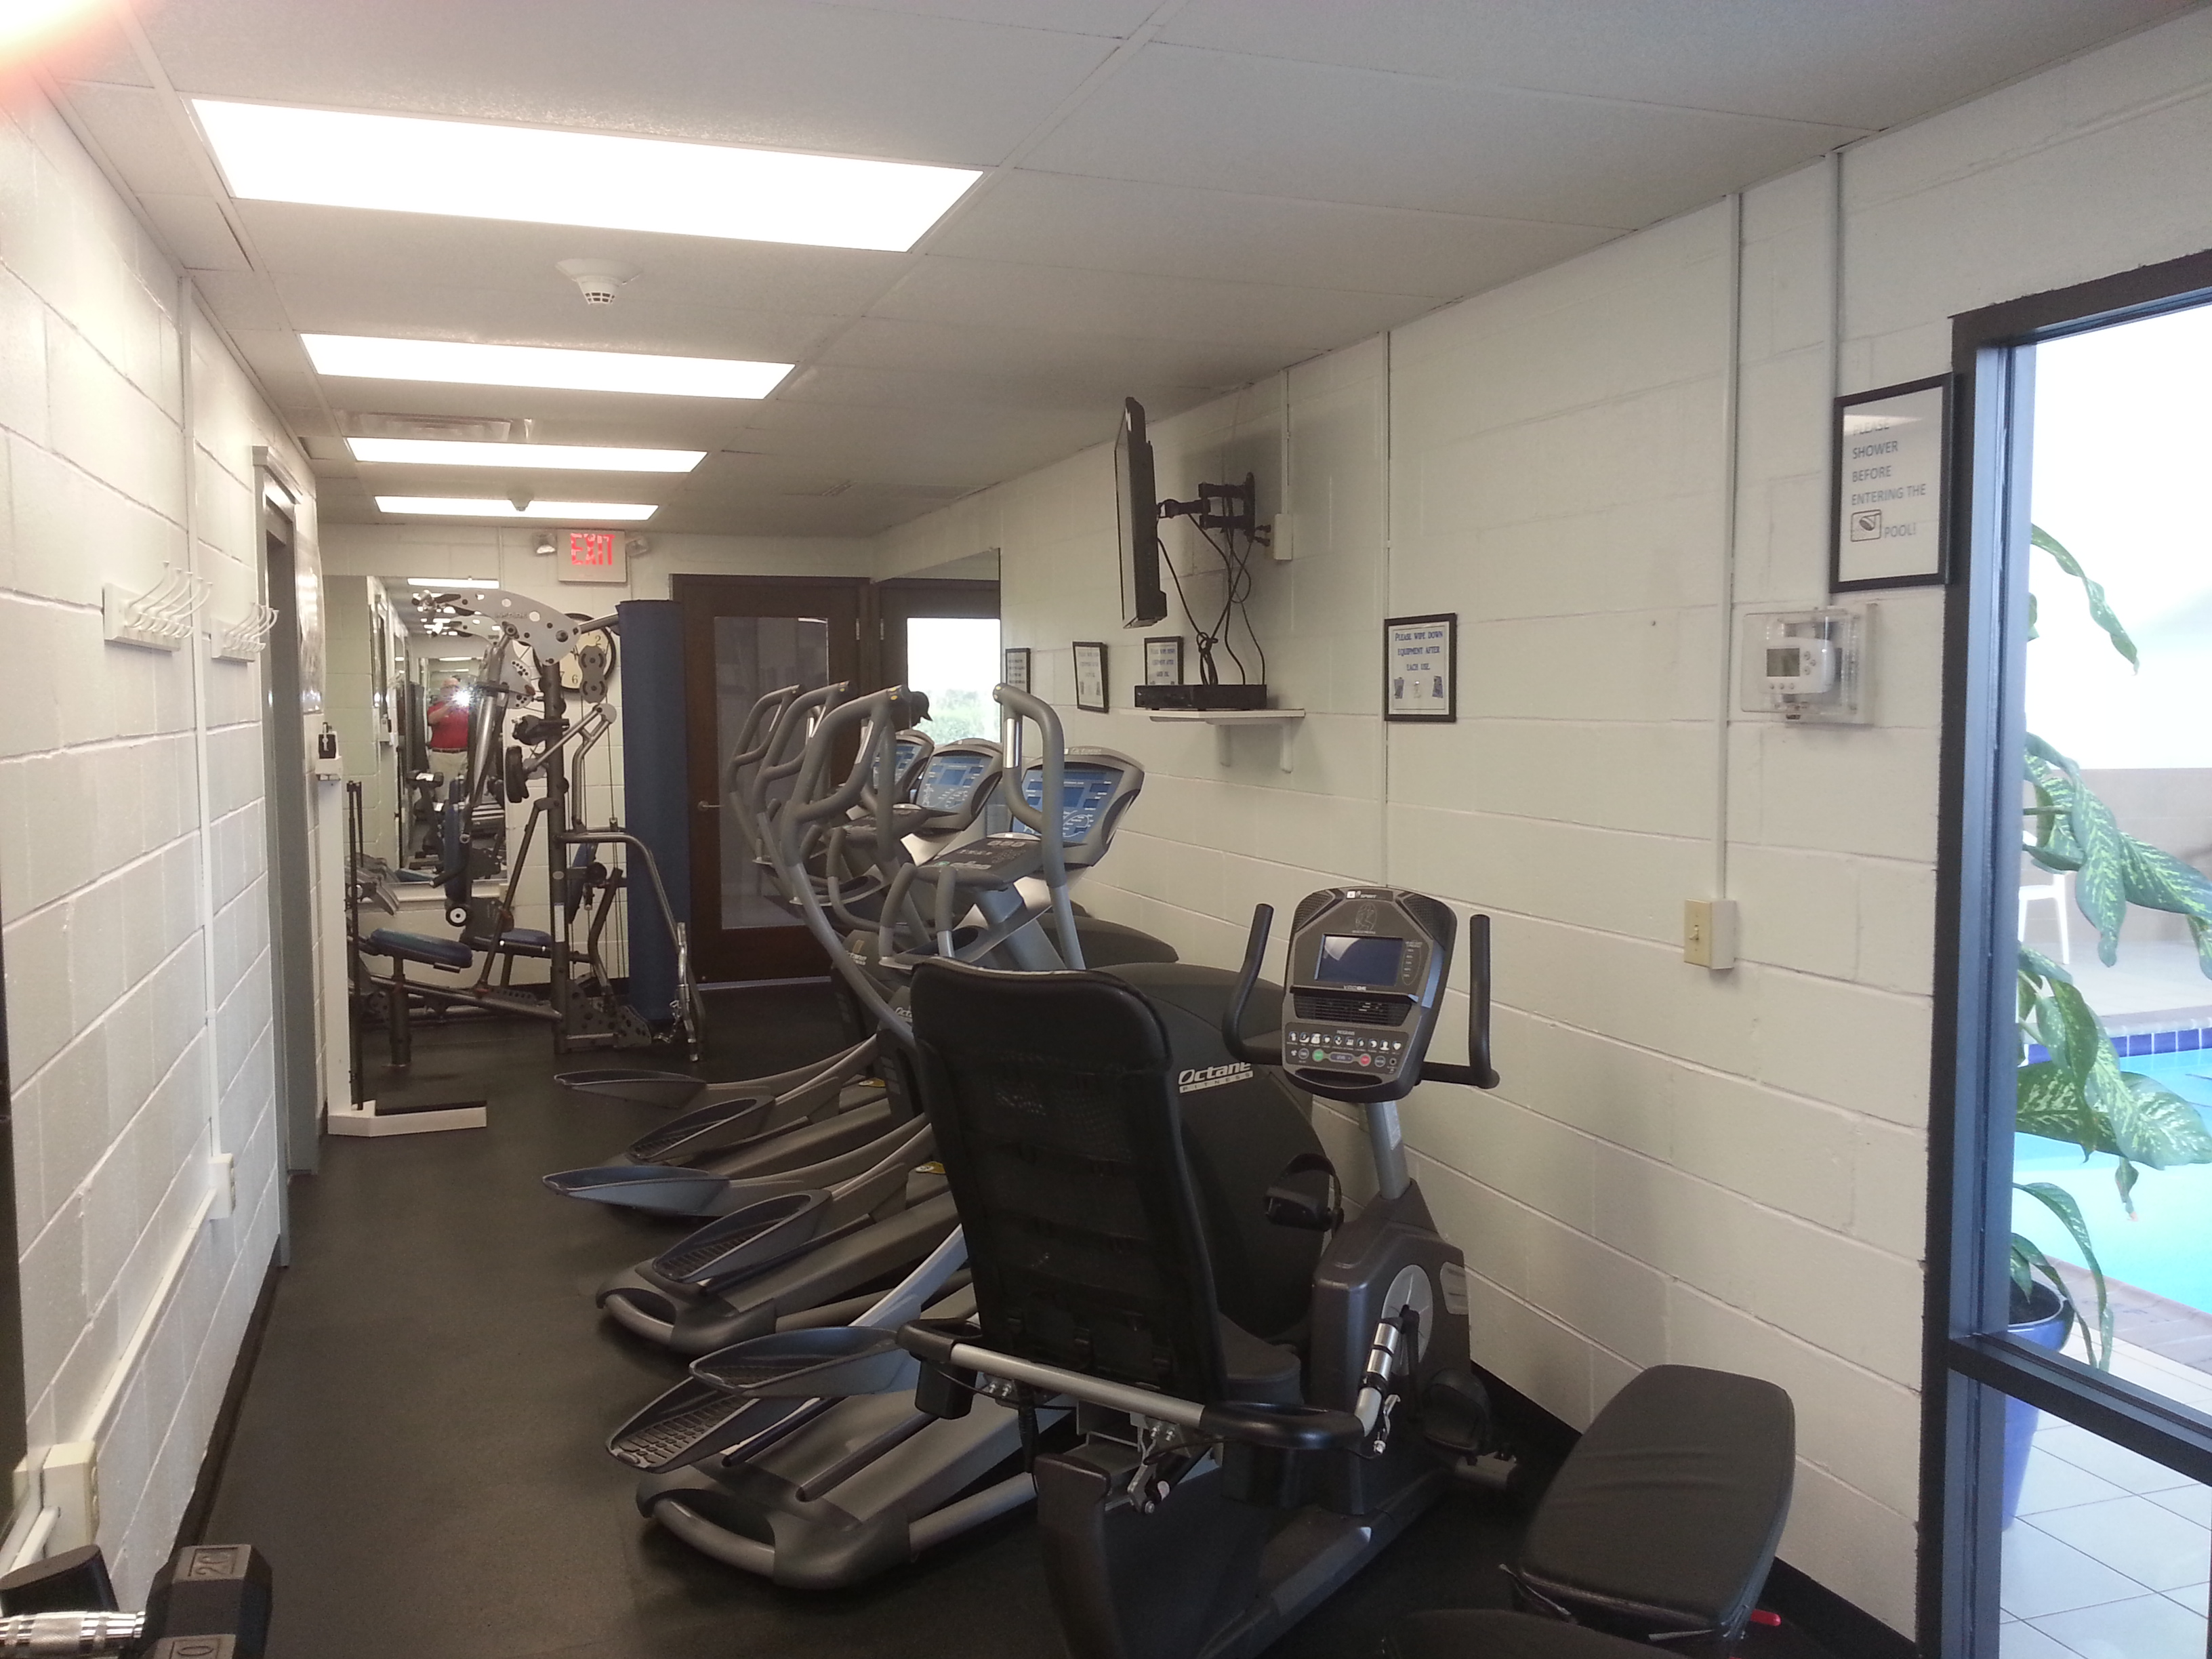 On the ground level next to the indoor pool is a clean, well lit fitness room.